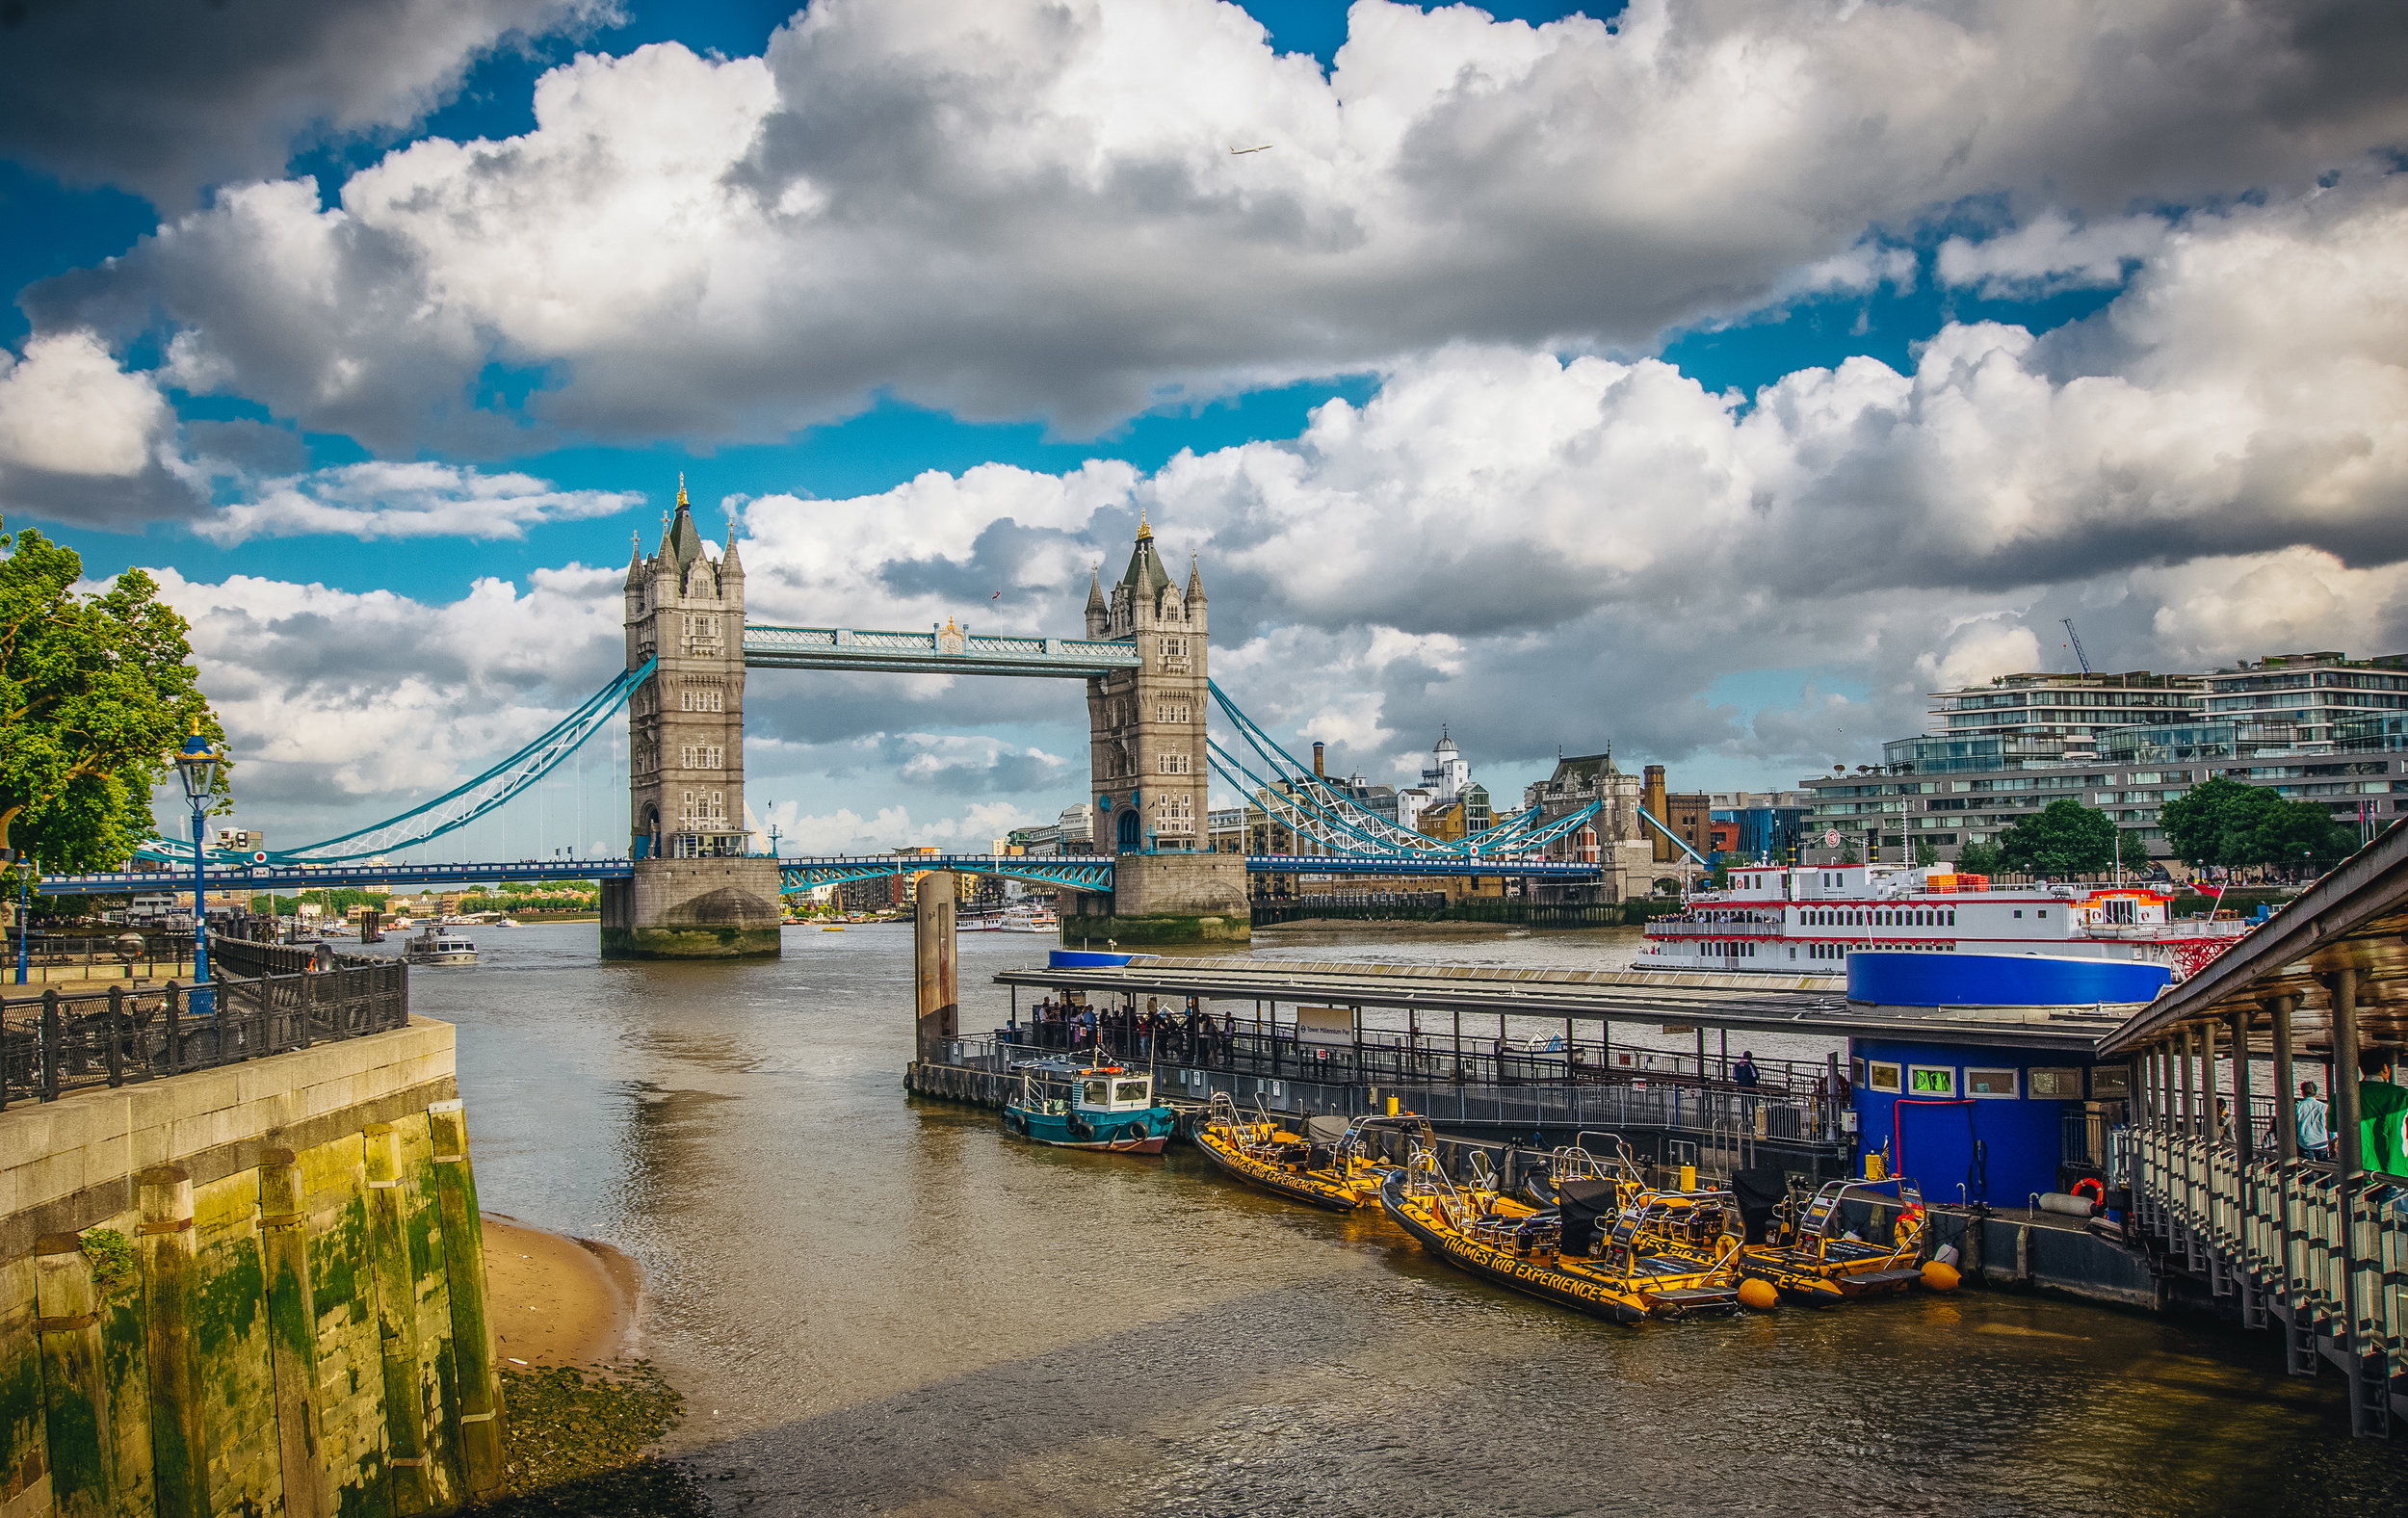 A typical view of Tower Bridge.